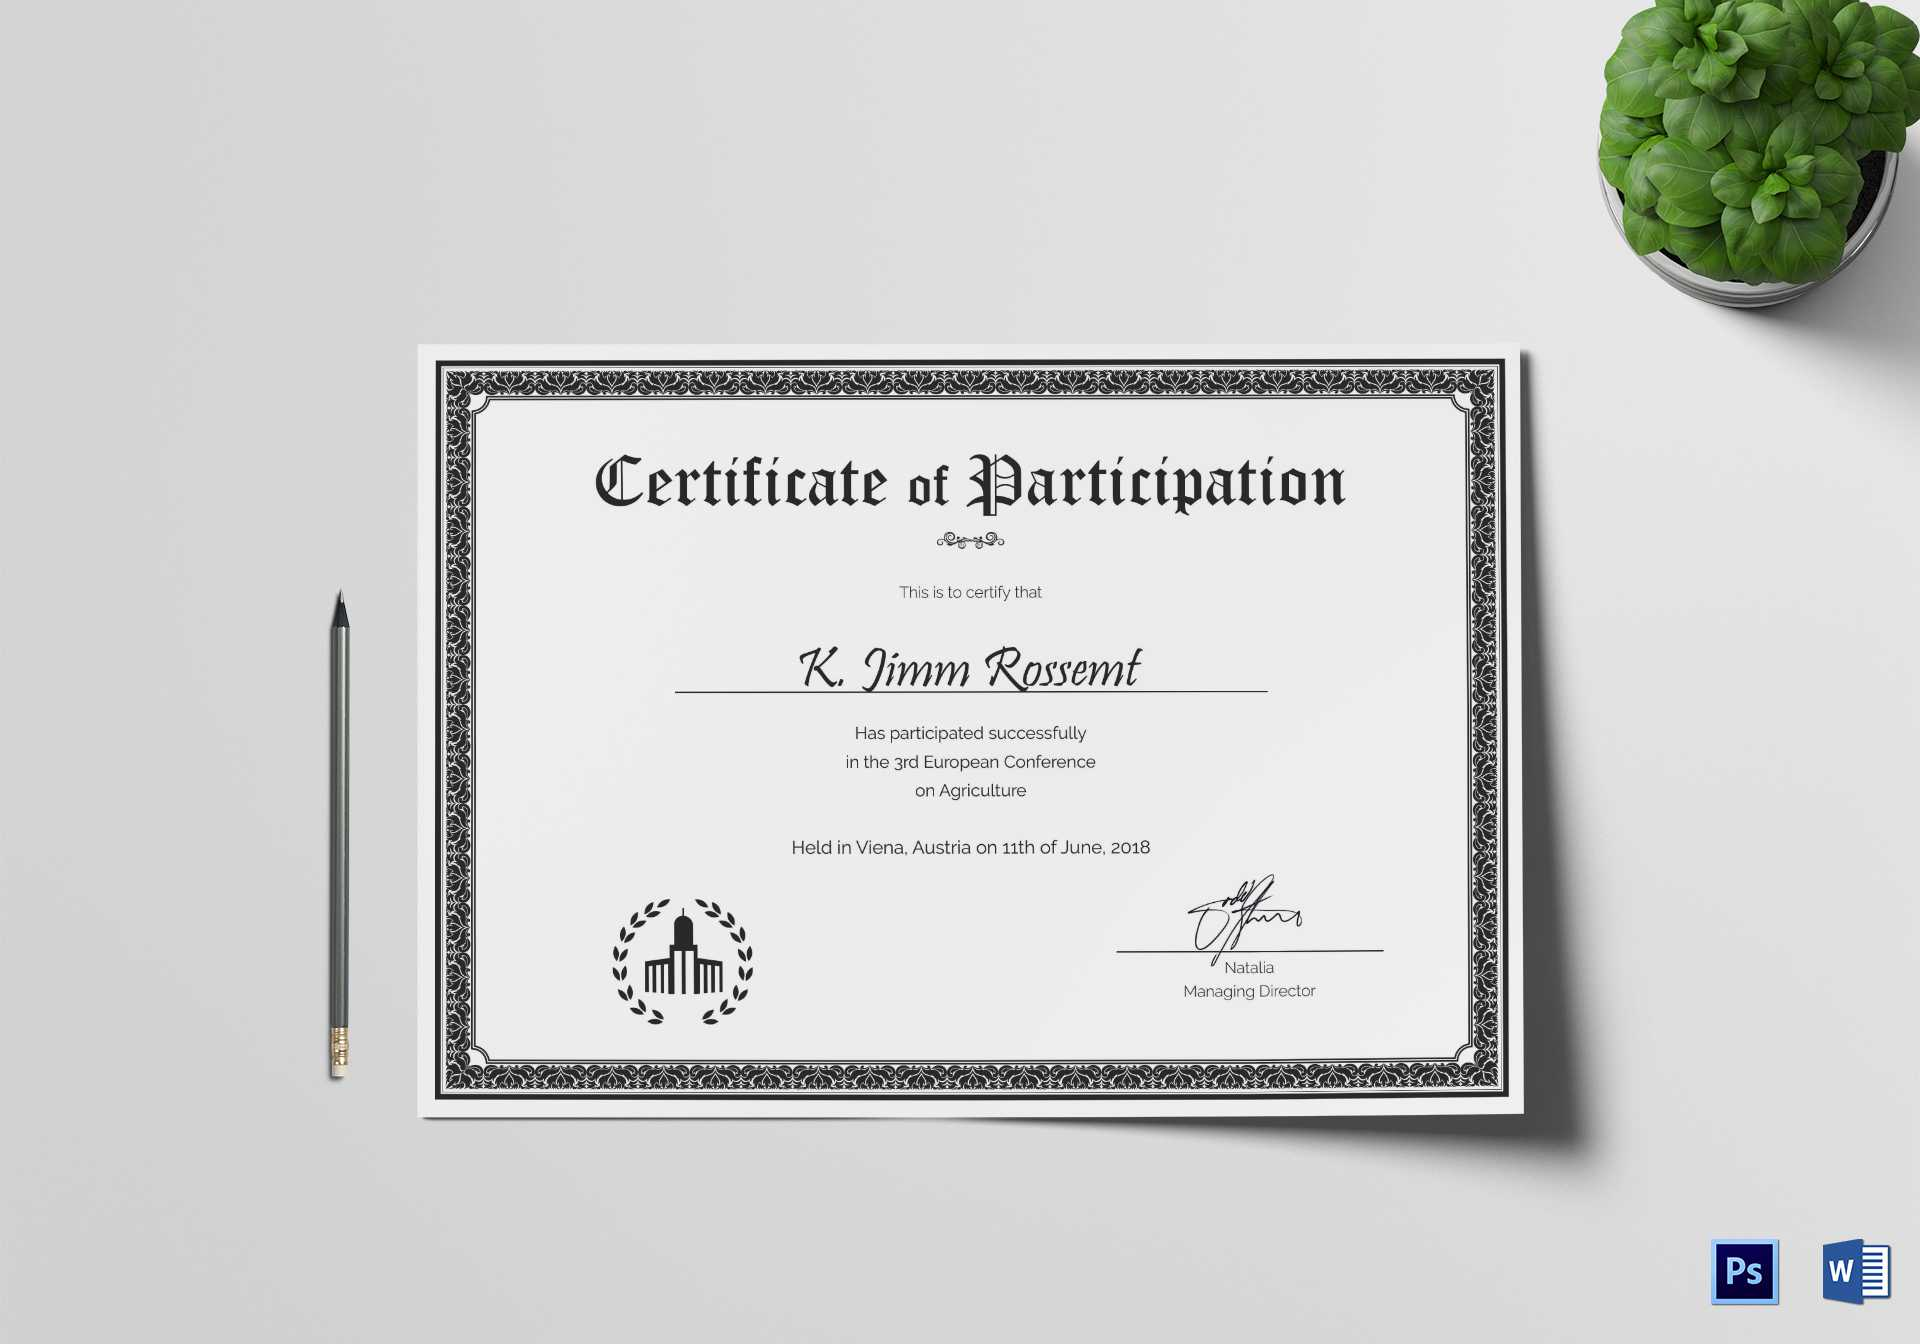 Conference Participation Certificate Template Inside Conference Participation Certificate Template